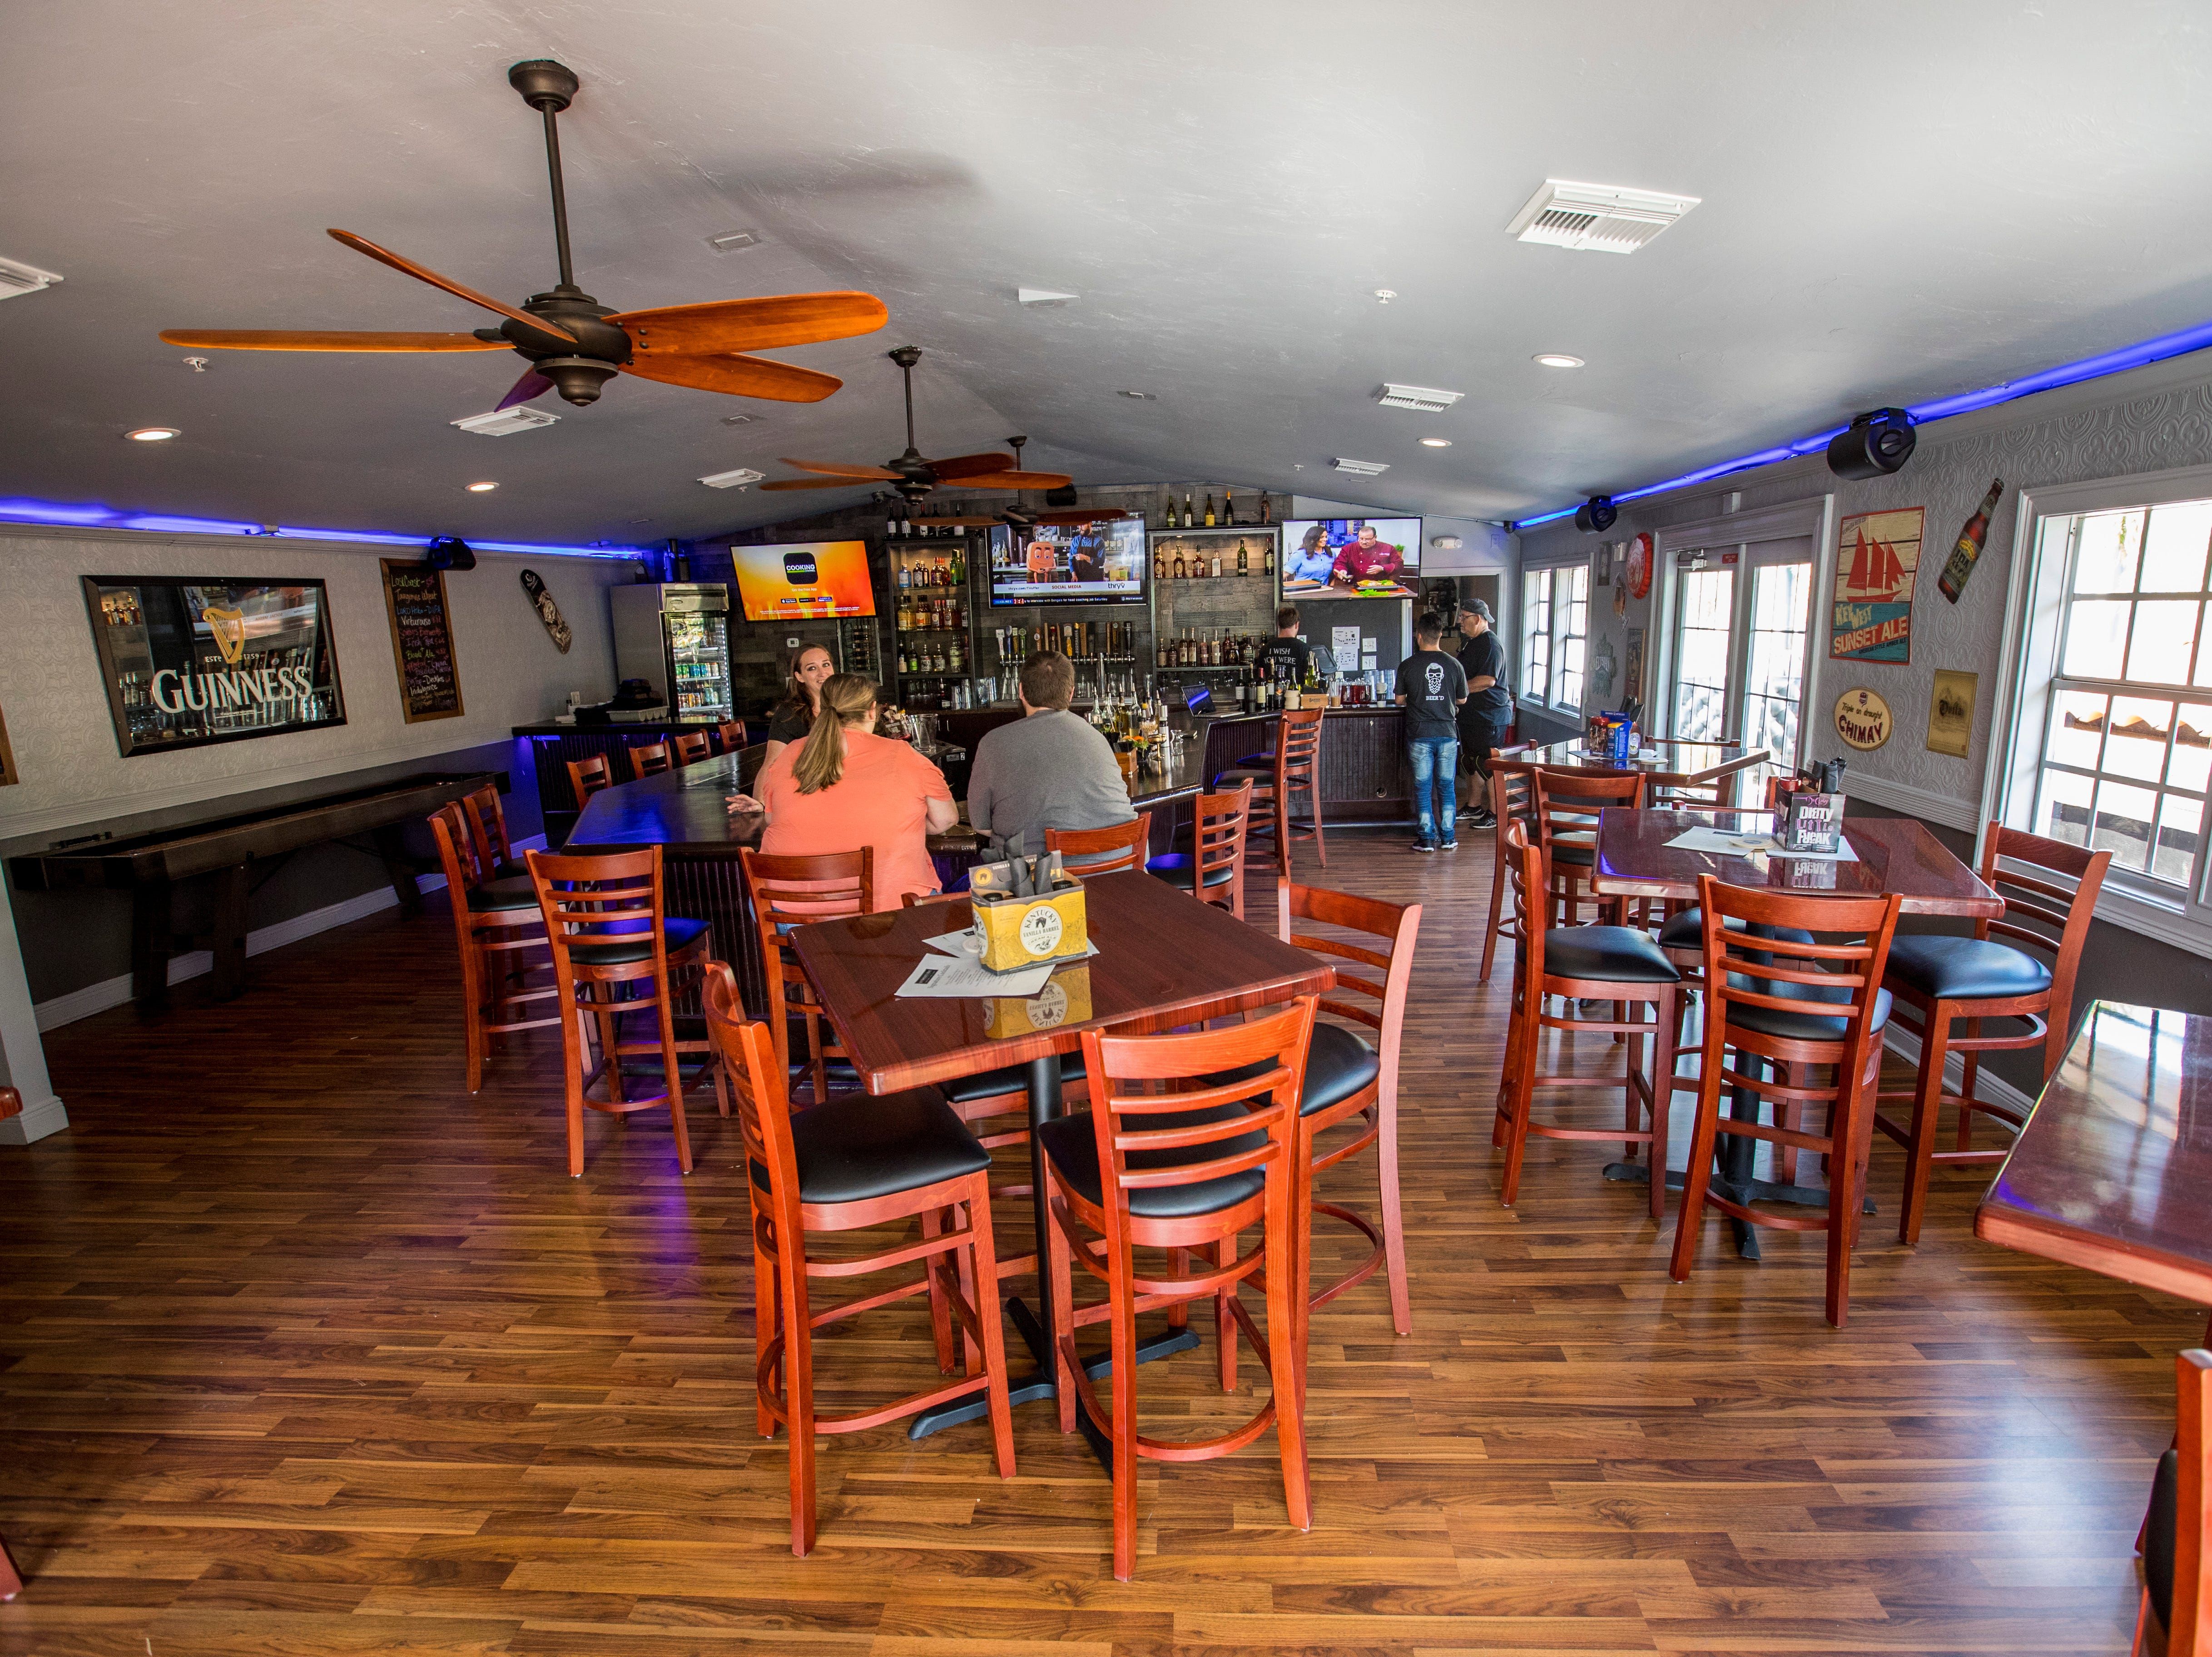 Upstairs bar and restaurant area. Owners Chad and Amber Zollinger just opened their second spot for their popular restaurant, 10 Twenty Five. The restaurant is opening in downtown Fort Myers, making it the second location for the local restaurant, which opened its first store in Cape Coral in fall 2016.